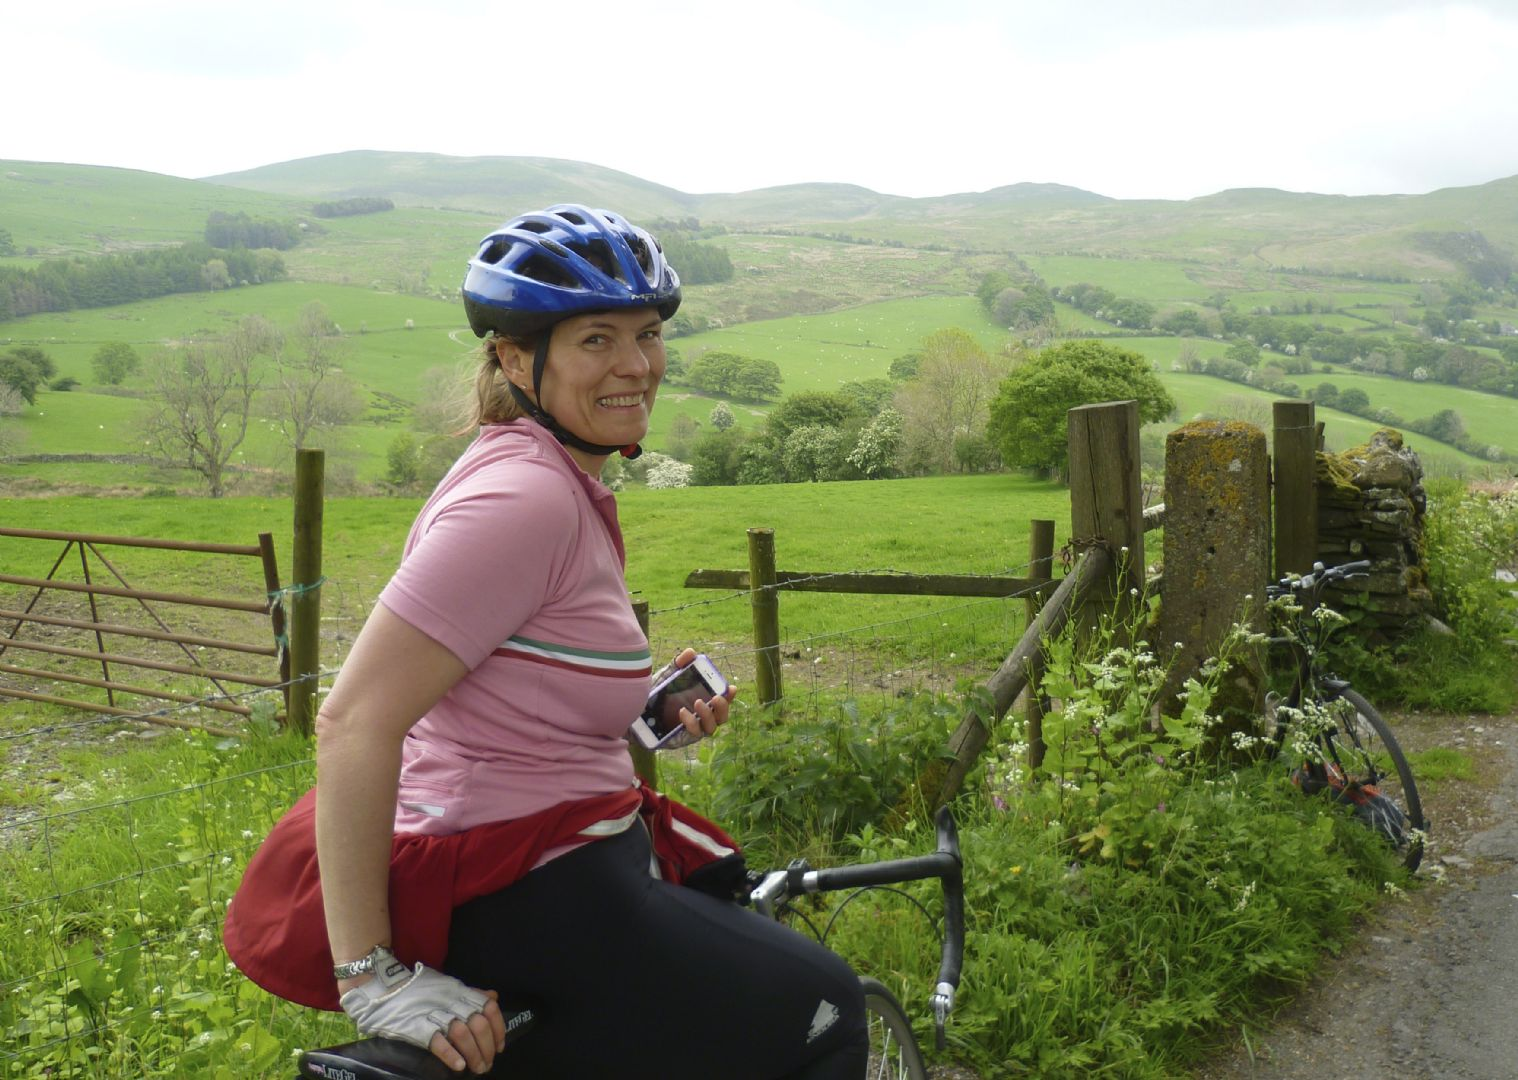 P1020368.jpg - UK - C2C - Coast to Coast 3 Days Cycling - Self-Guided Leisure Cycling Holiday - Leisure Cycling